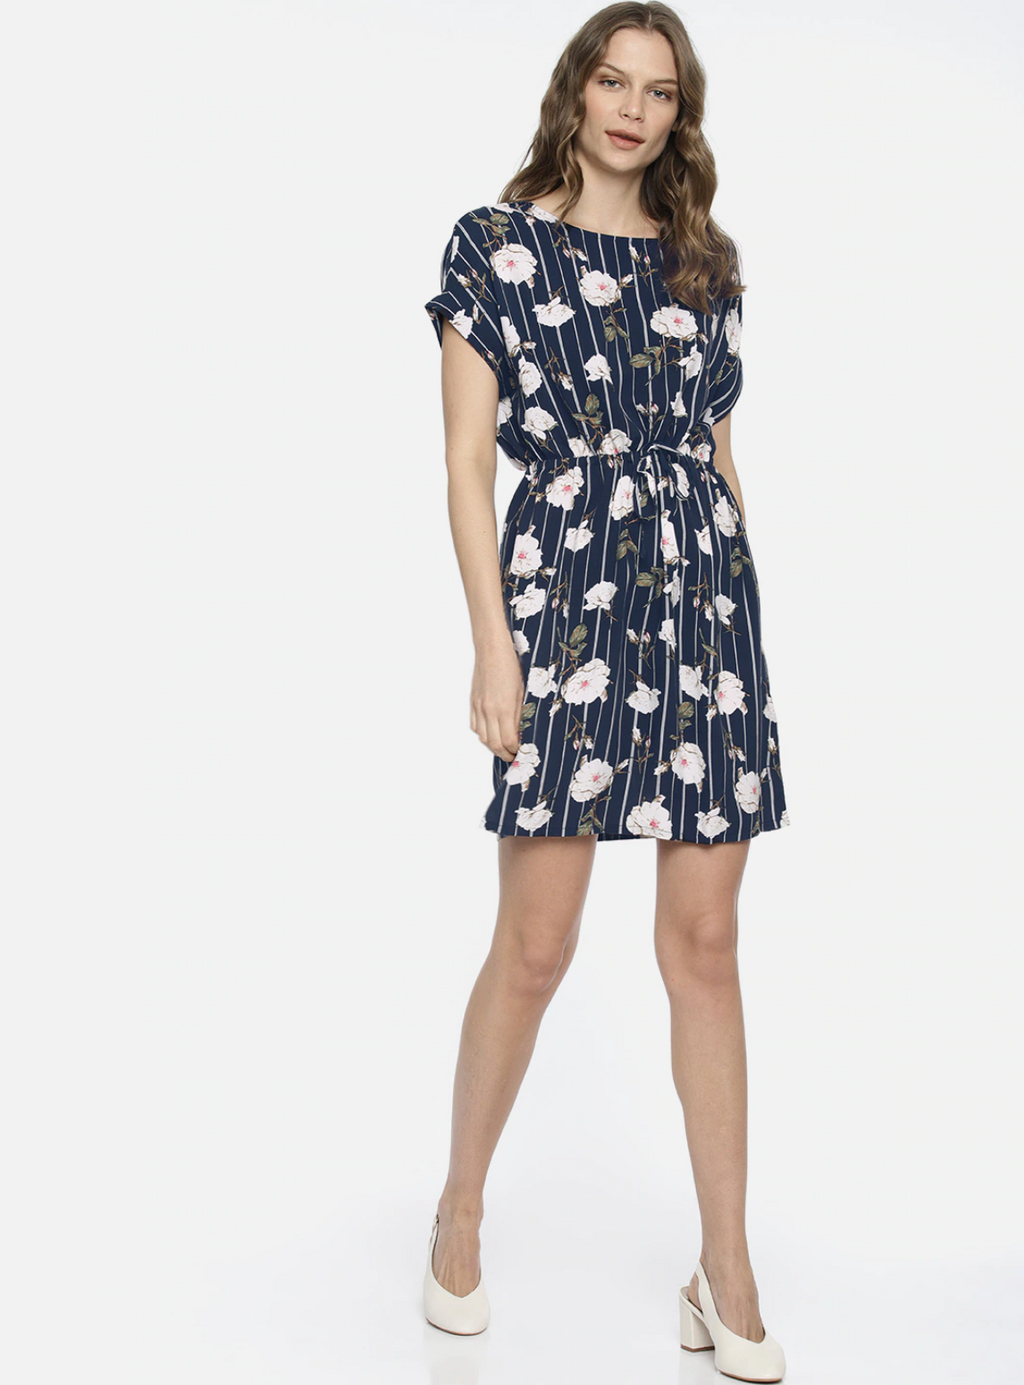 NAVY FLORAL CINCHED WAIST DRESS